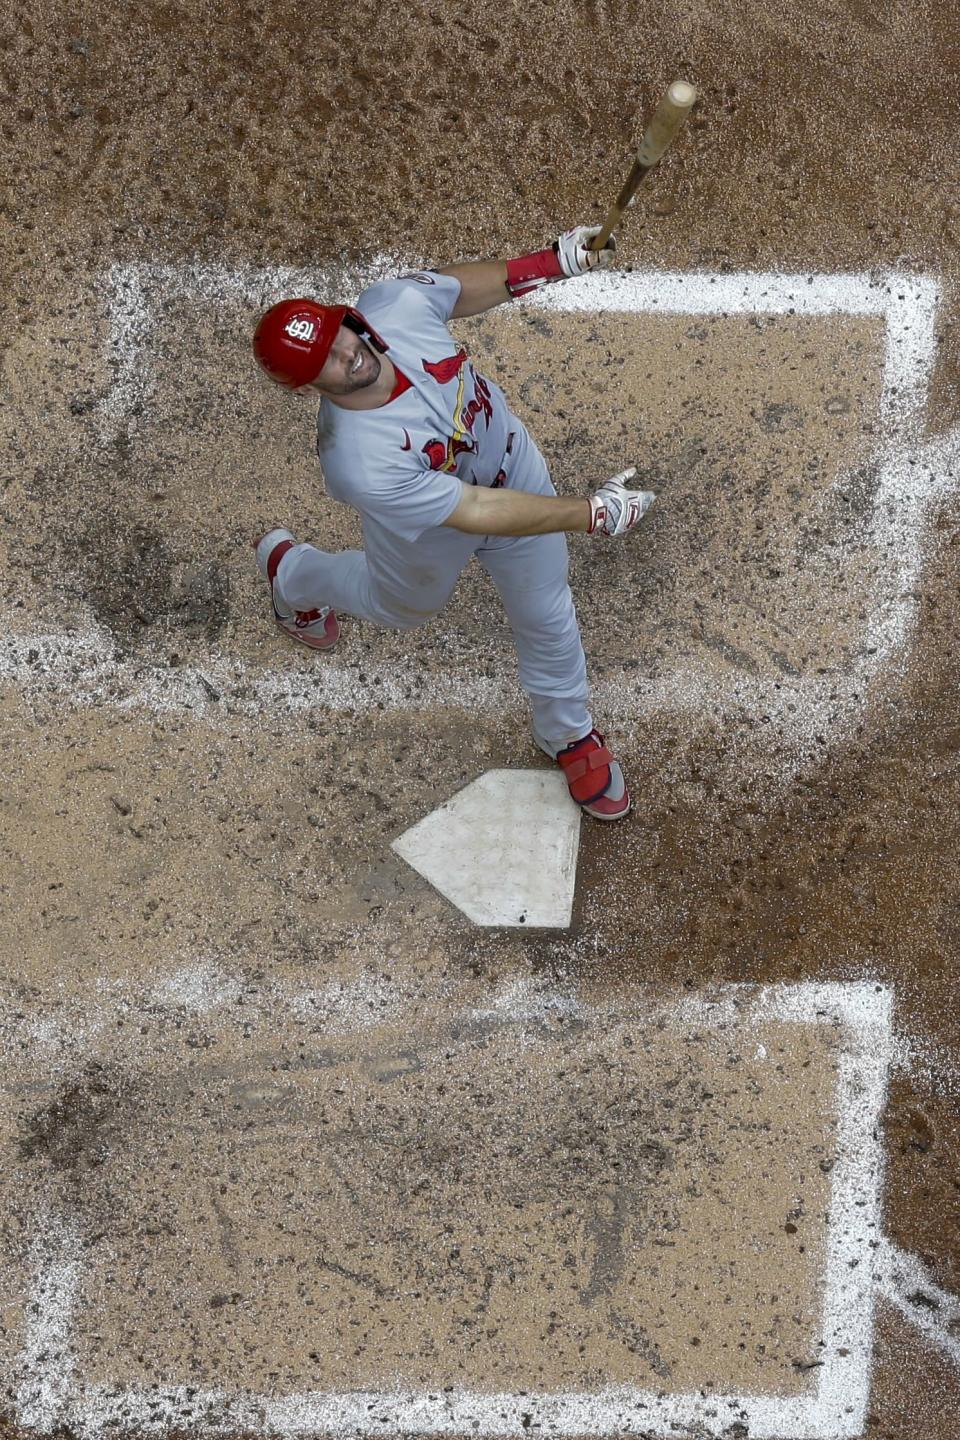 St. Louis Cardinals' Paul Goldschmidt watches his pop out with bases loaded during the sixth inning of a baseball game against the Milwaukee Brewers Sunday, Sept. 5, 2021, in Milwaukee. (AP Photo/Morry Gash)